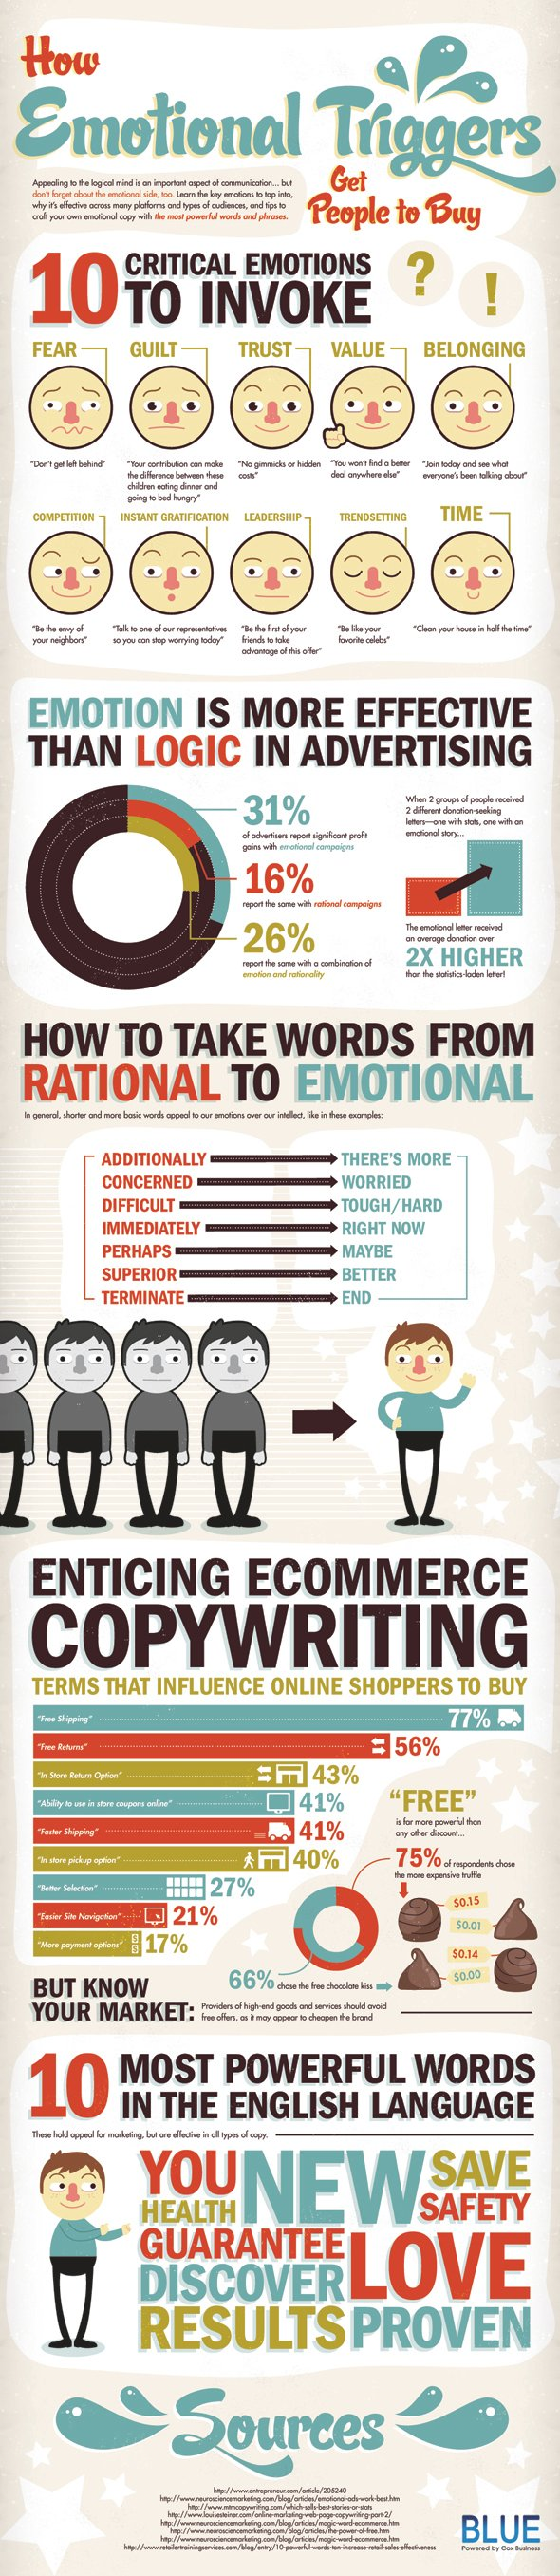 BLUE-Infographic-Emotional-Triggers-in-Copy-Online-5901-1.jpg